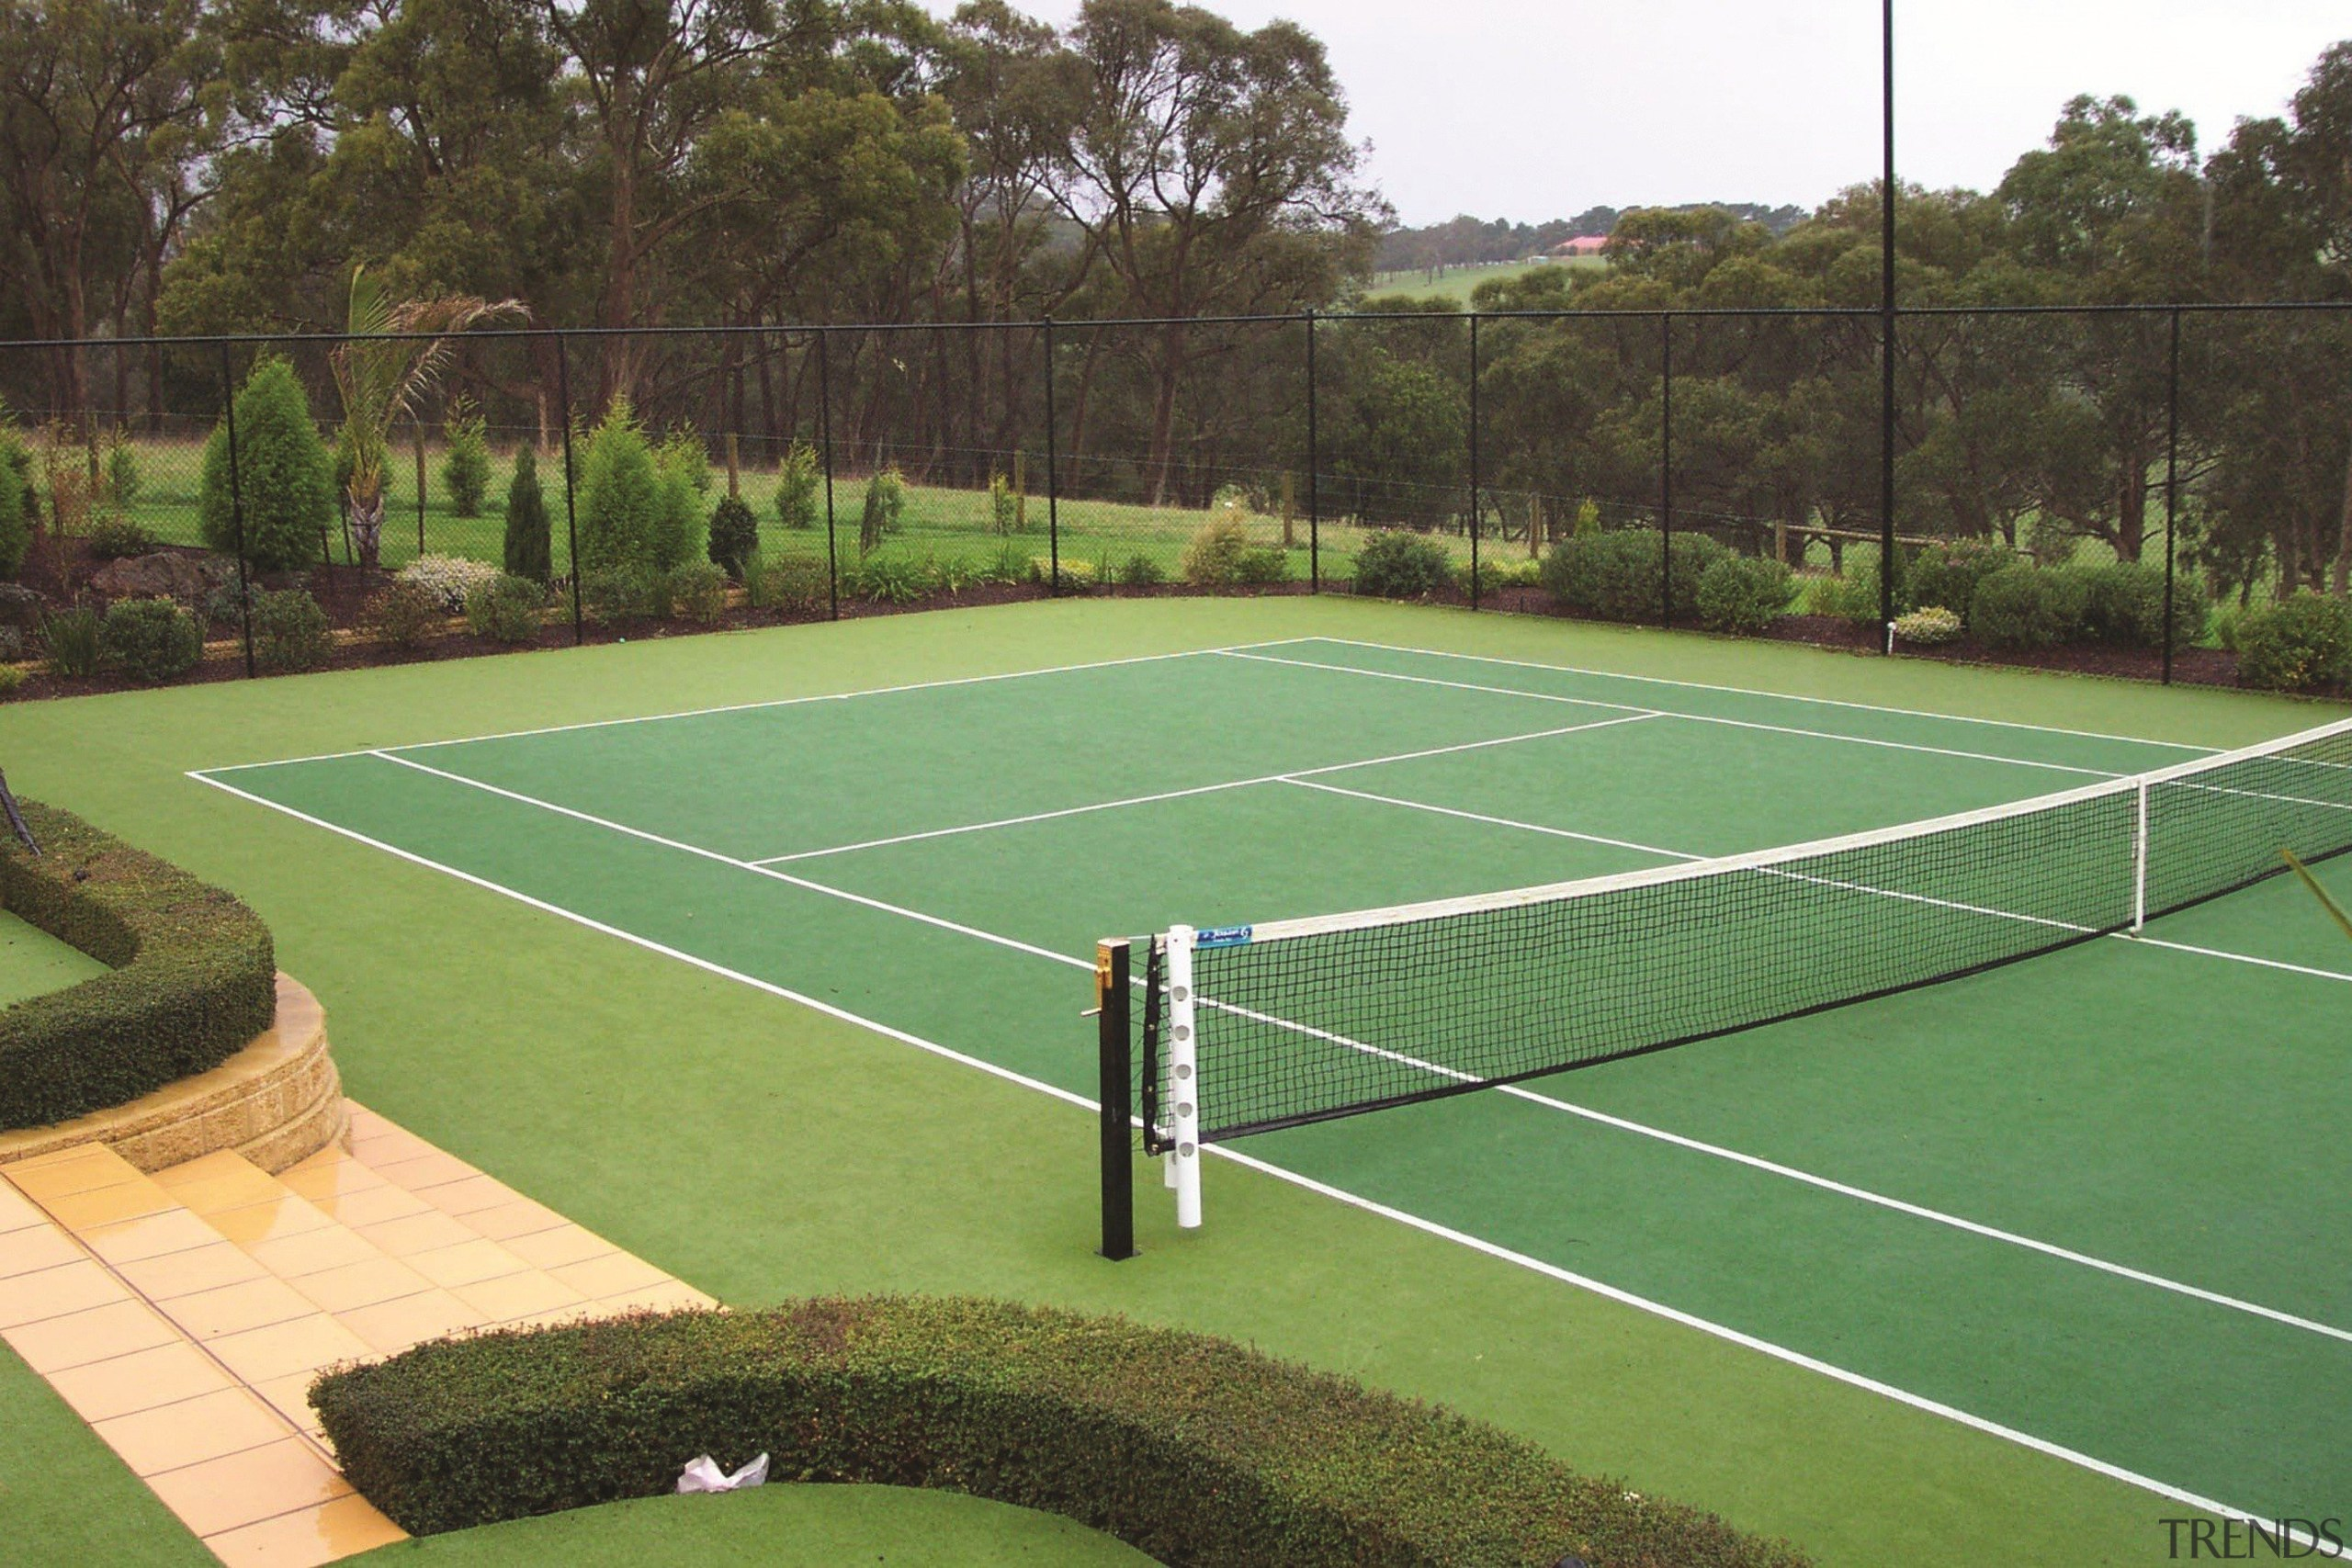 Sport - artificial turf | grass | net artificial turf, grass, net, plant, sport venue, sports, structure, tennis, tennis court, green